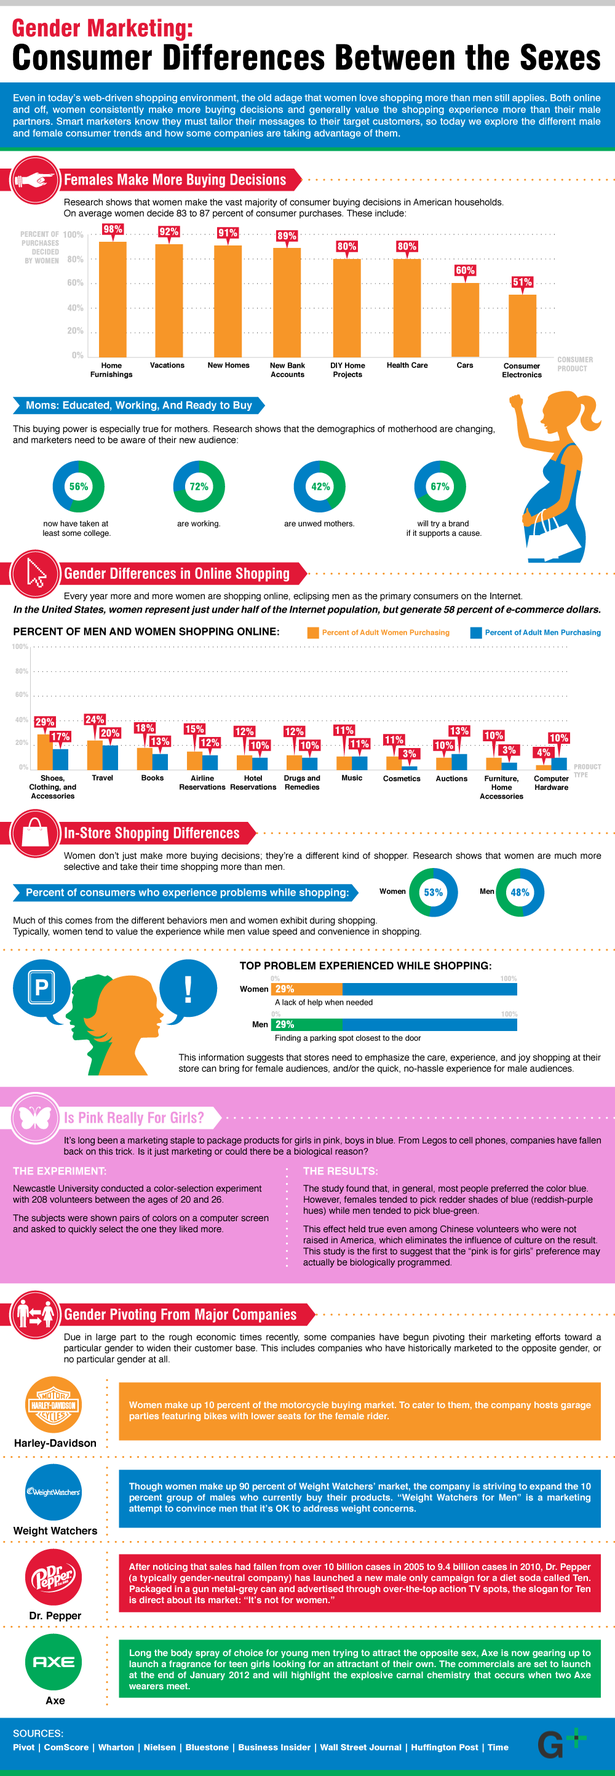 Consumer-Differences-Between-The-Sexes-infographic